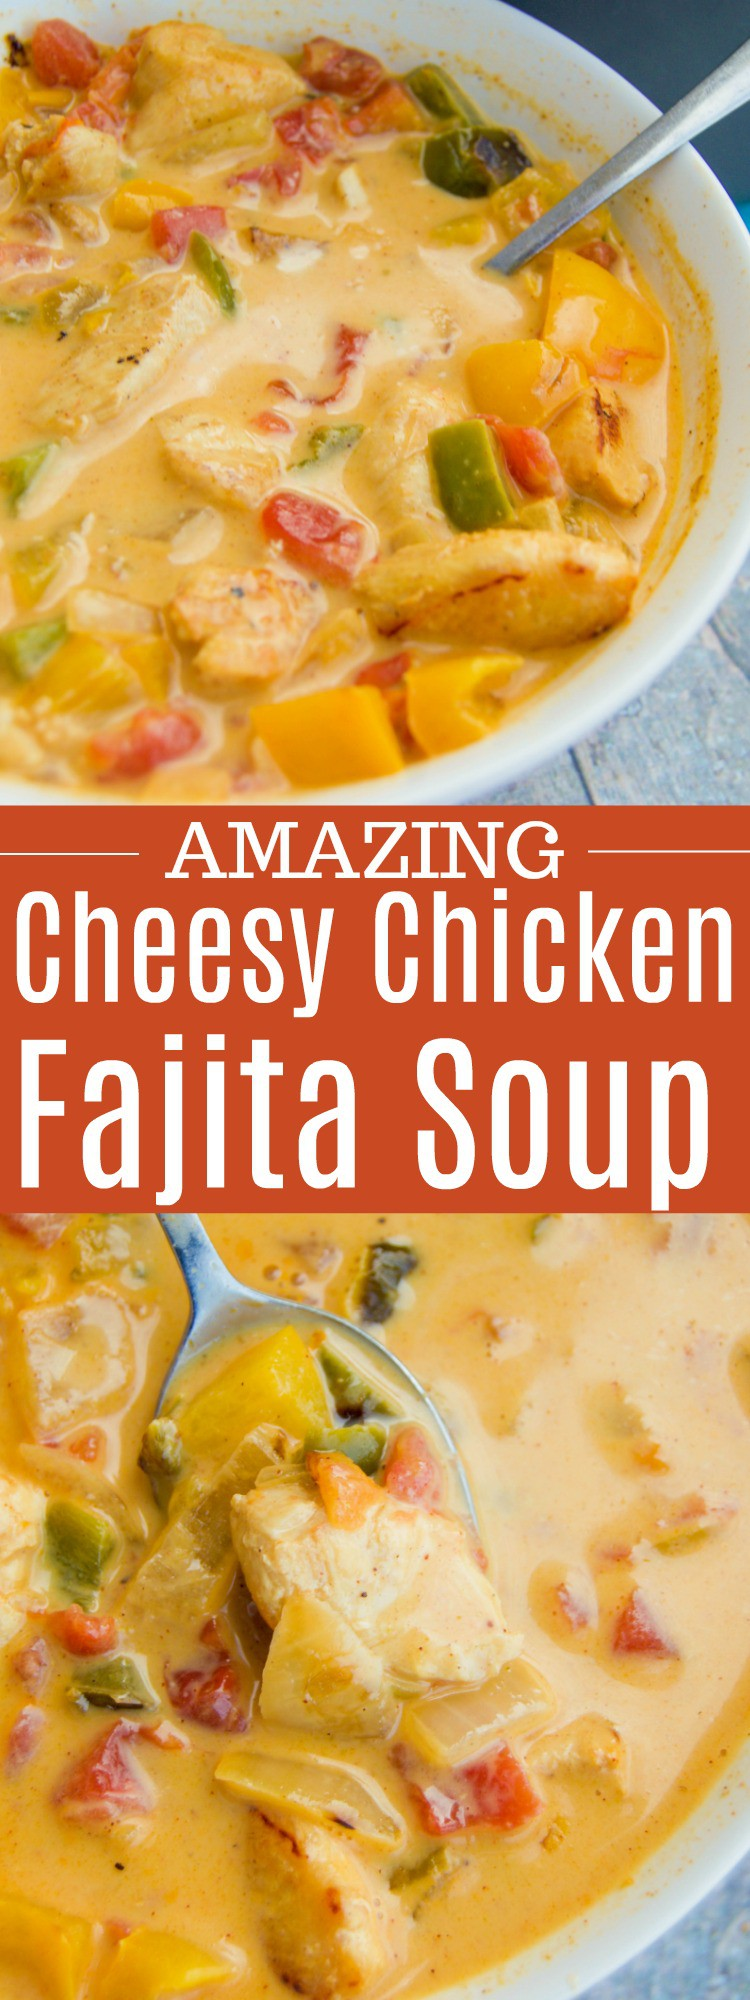 Cheesy Chicken Fajita Soup